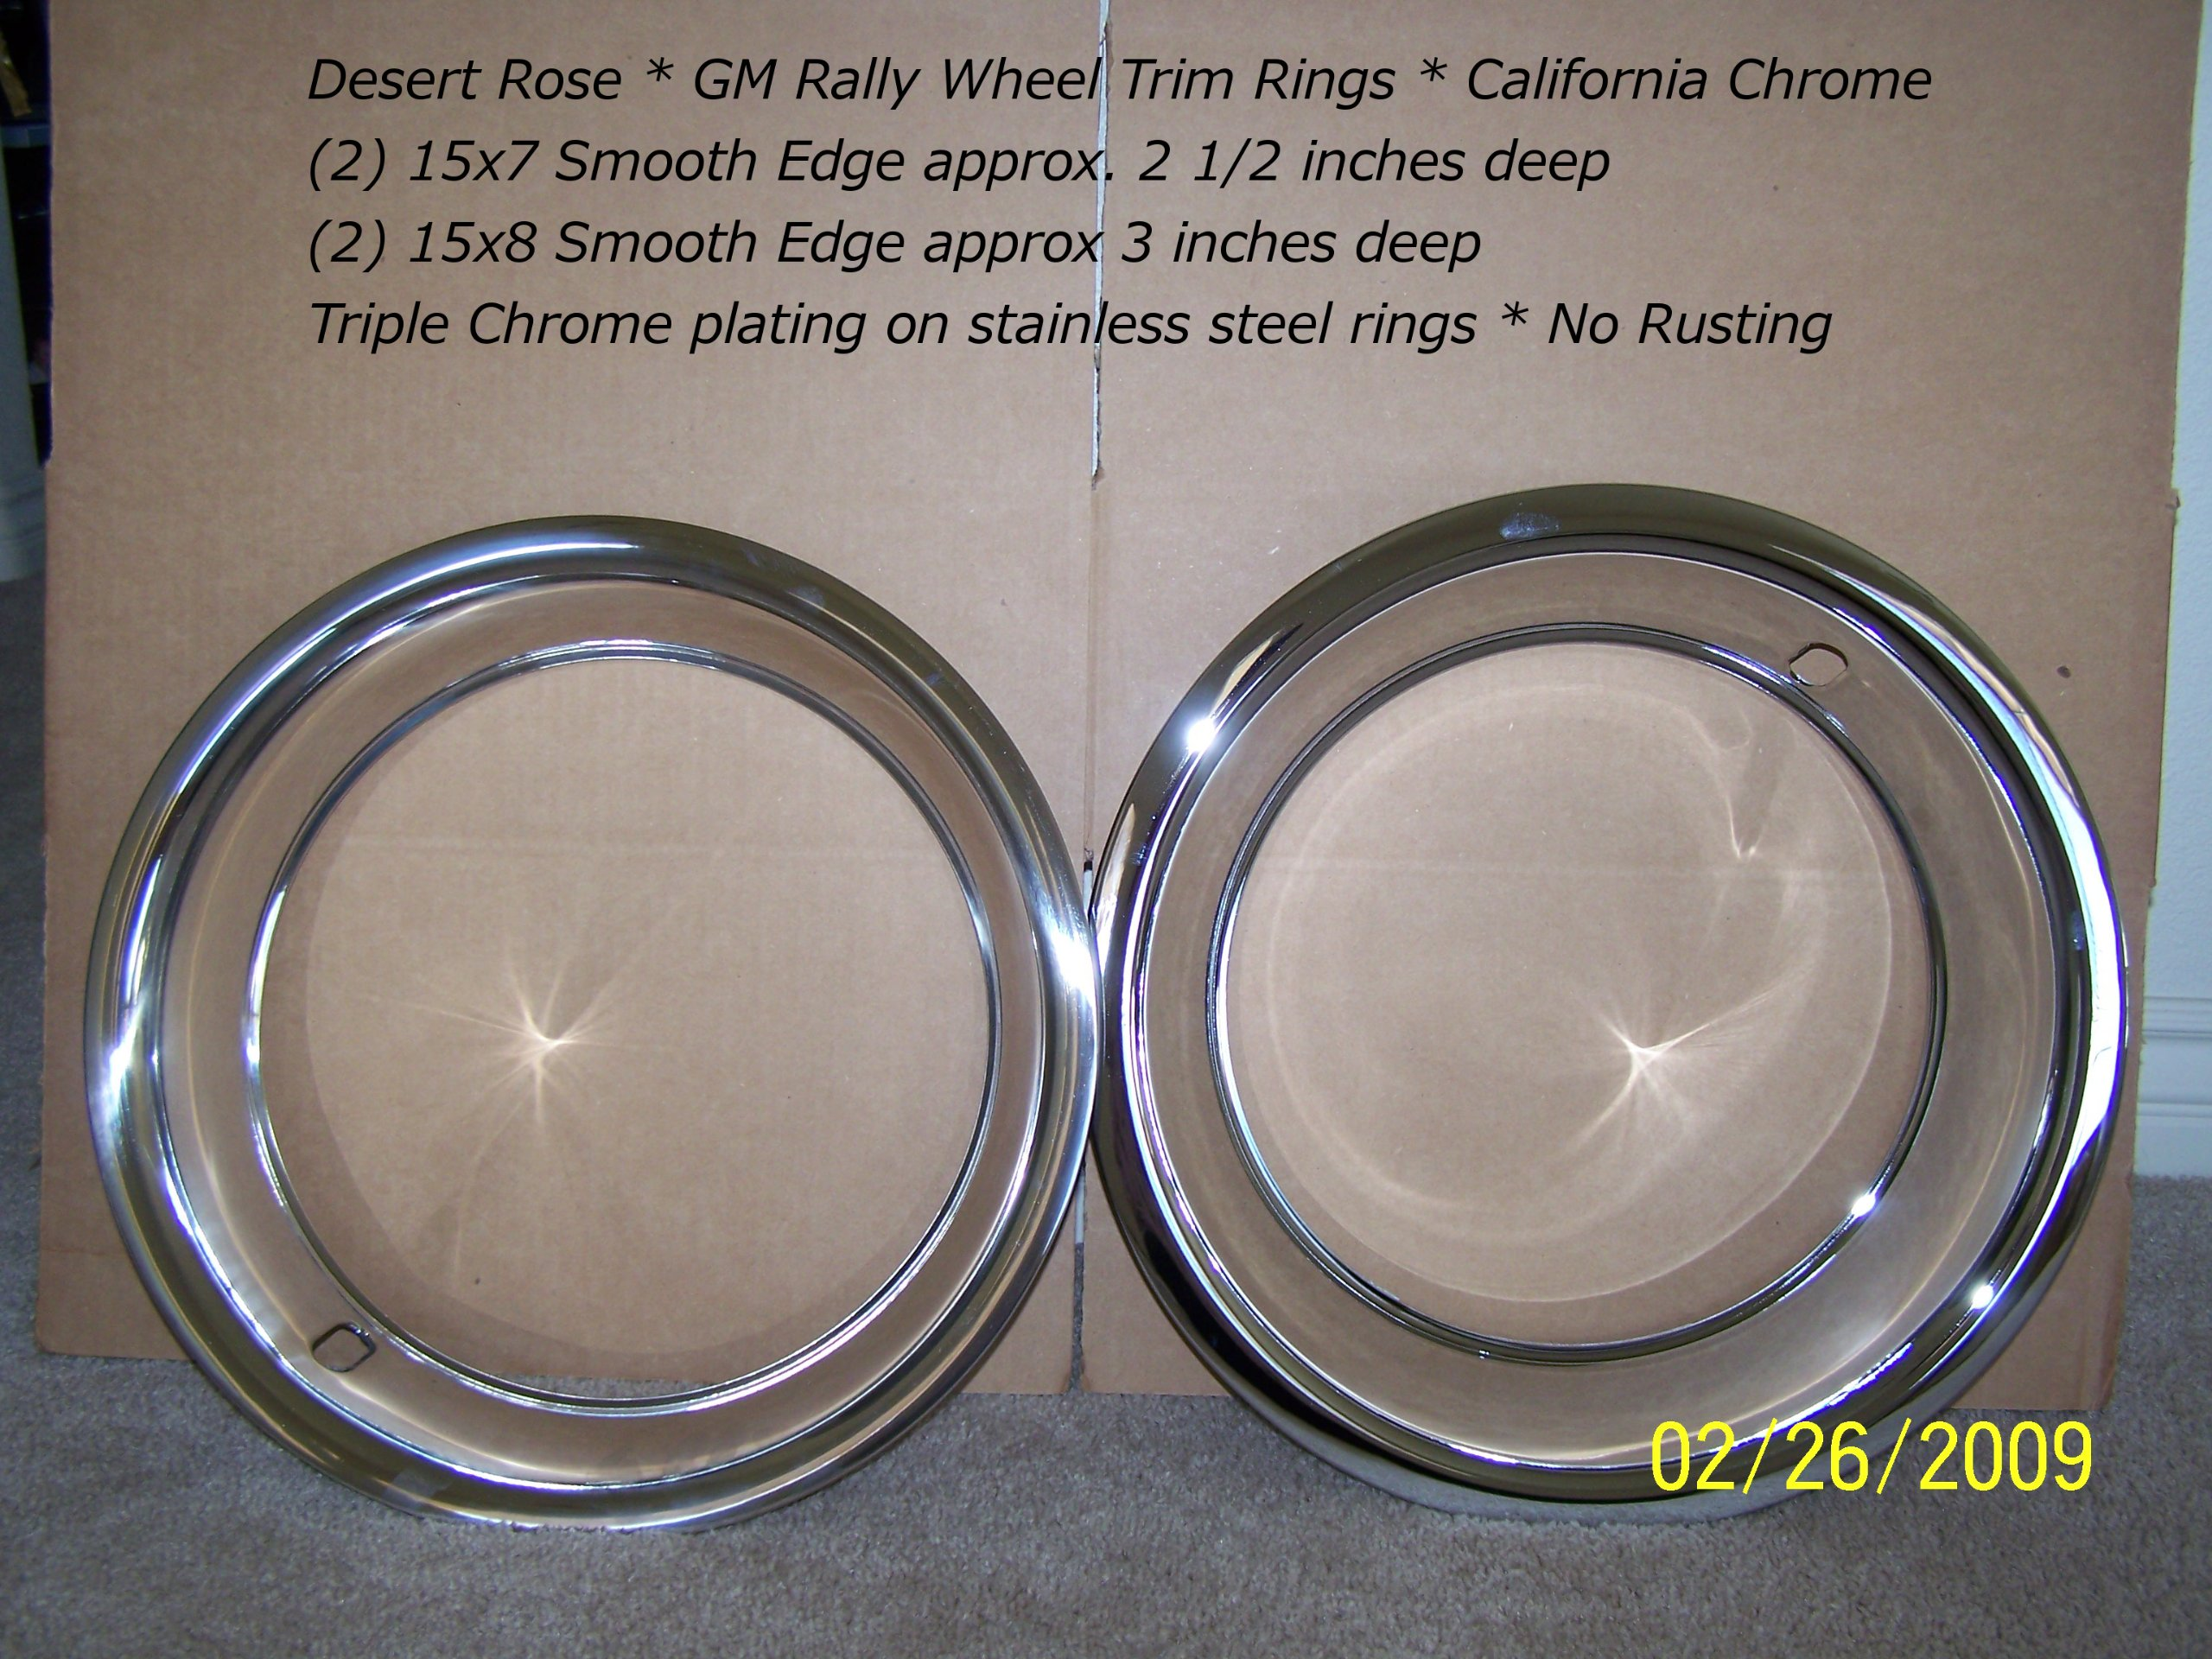 Eagle Flight 15x8 Pair and 15x7 Pair Chrome Stainless Steel Trim Rings (15x7/15x8) by Eagle Flight